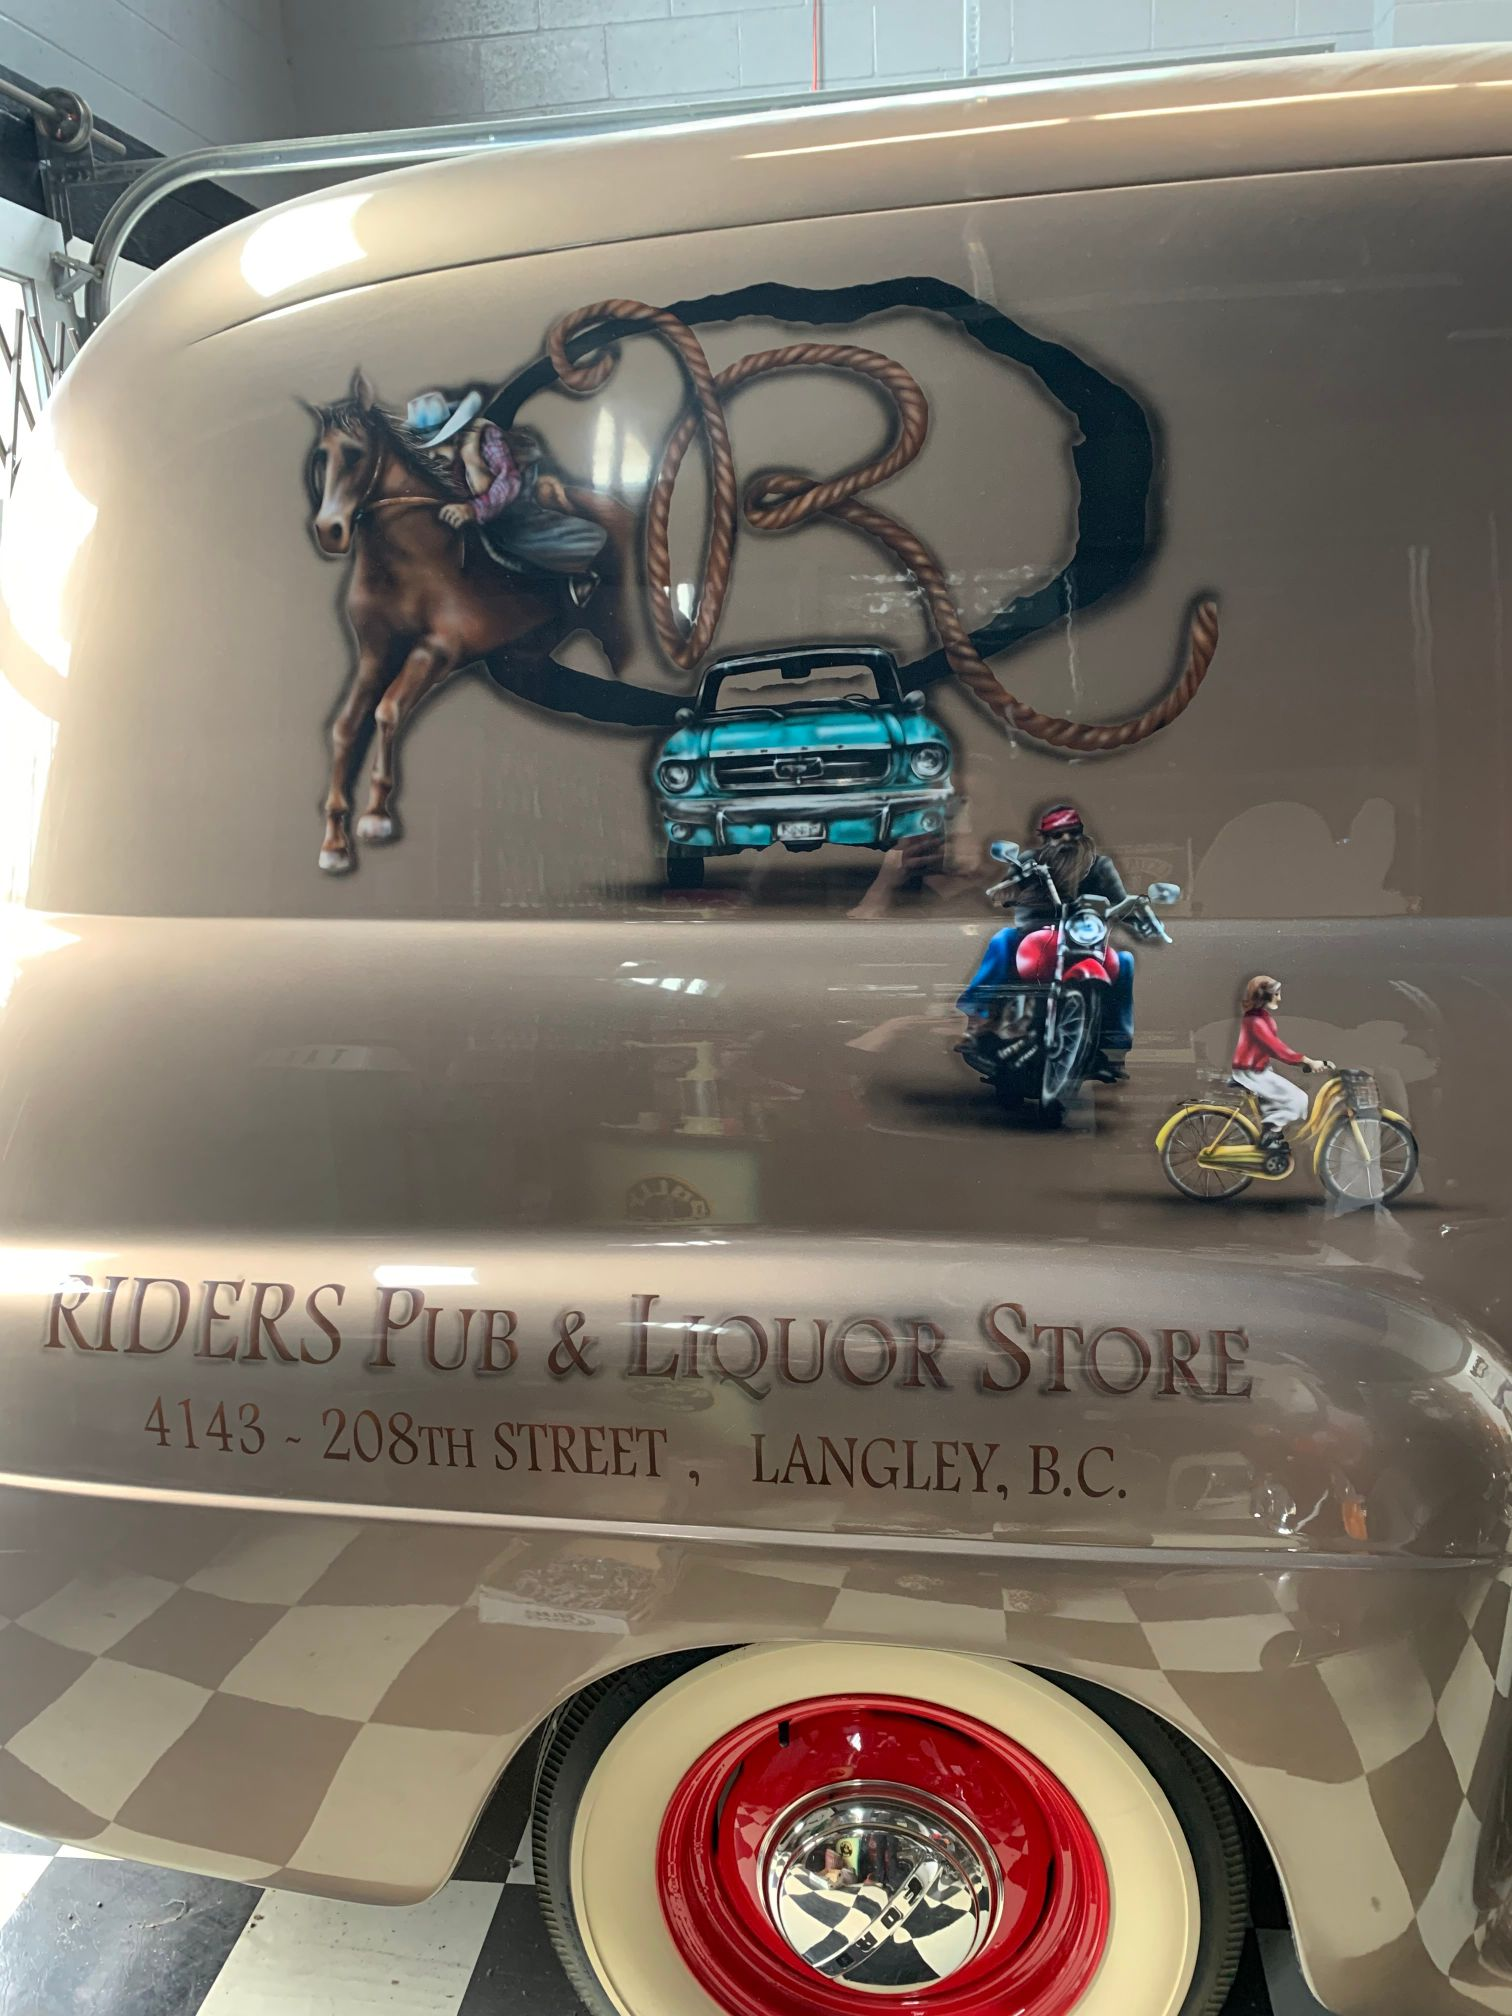 View of Riders Liquor Store branding on a car